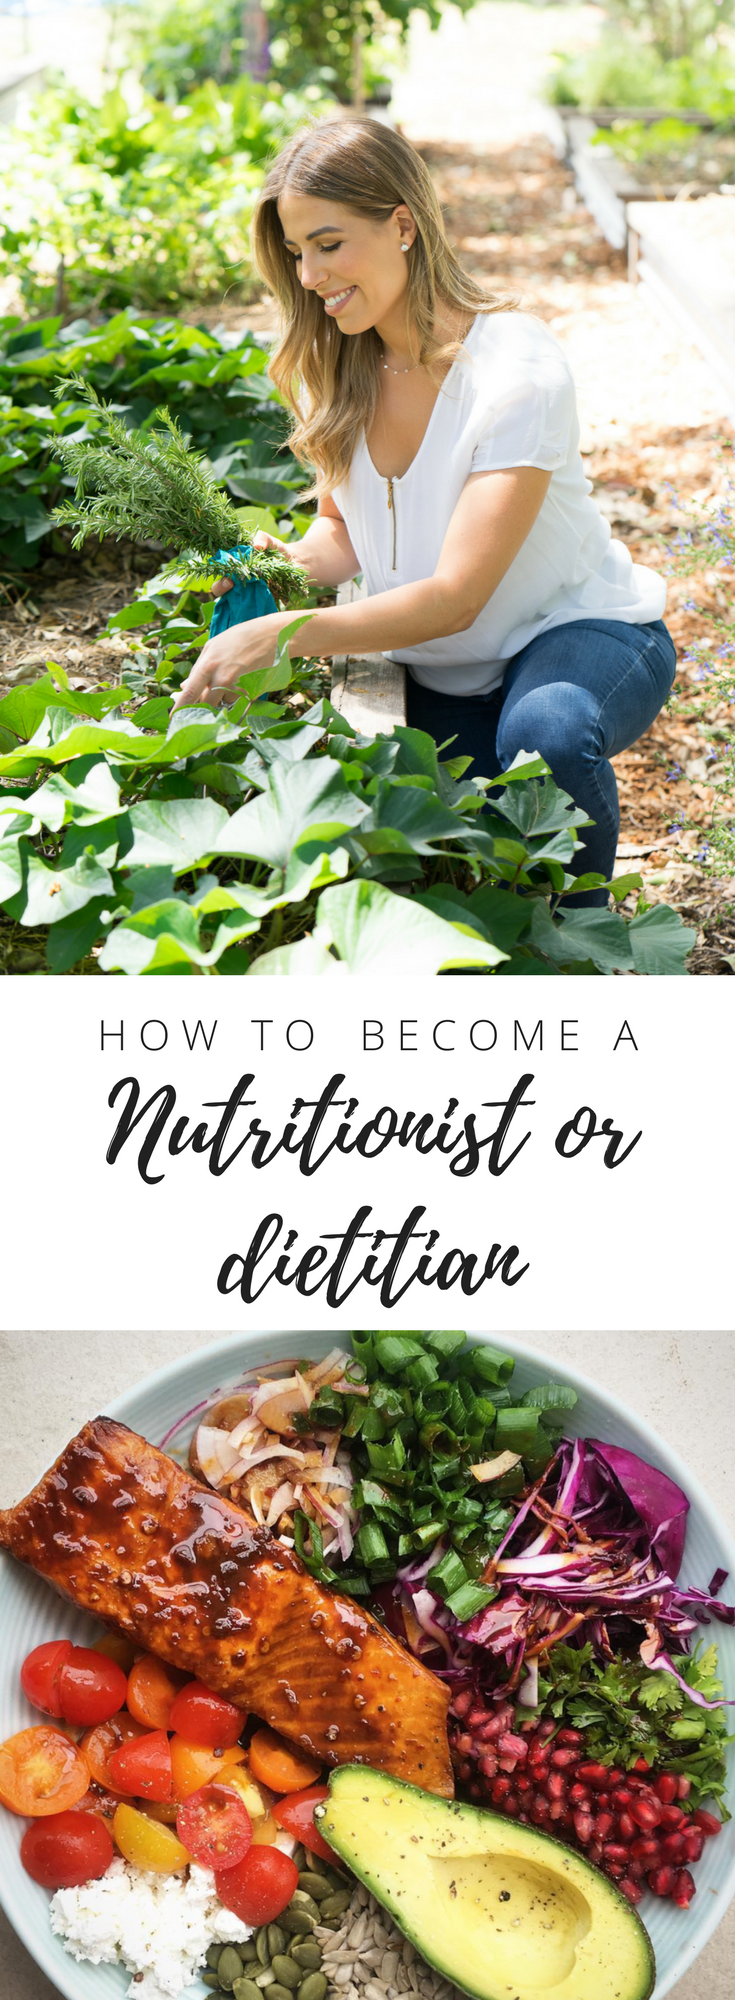 How to become a nutritionist or dietitian advice salary